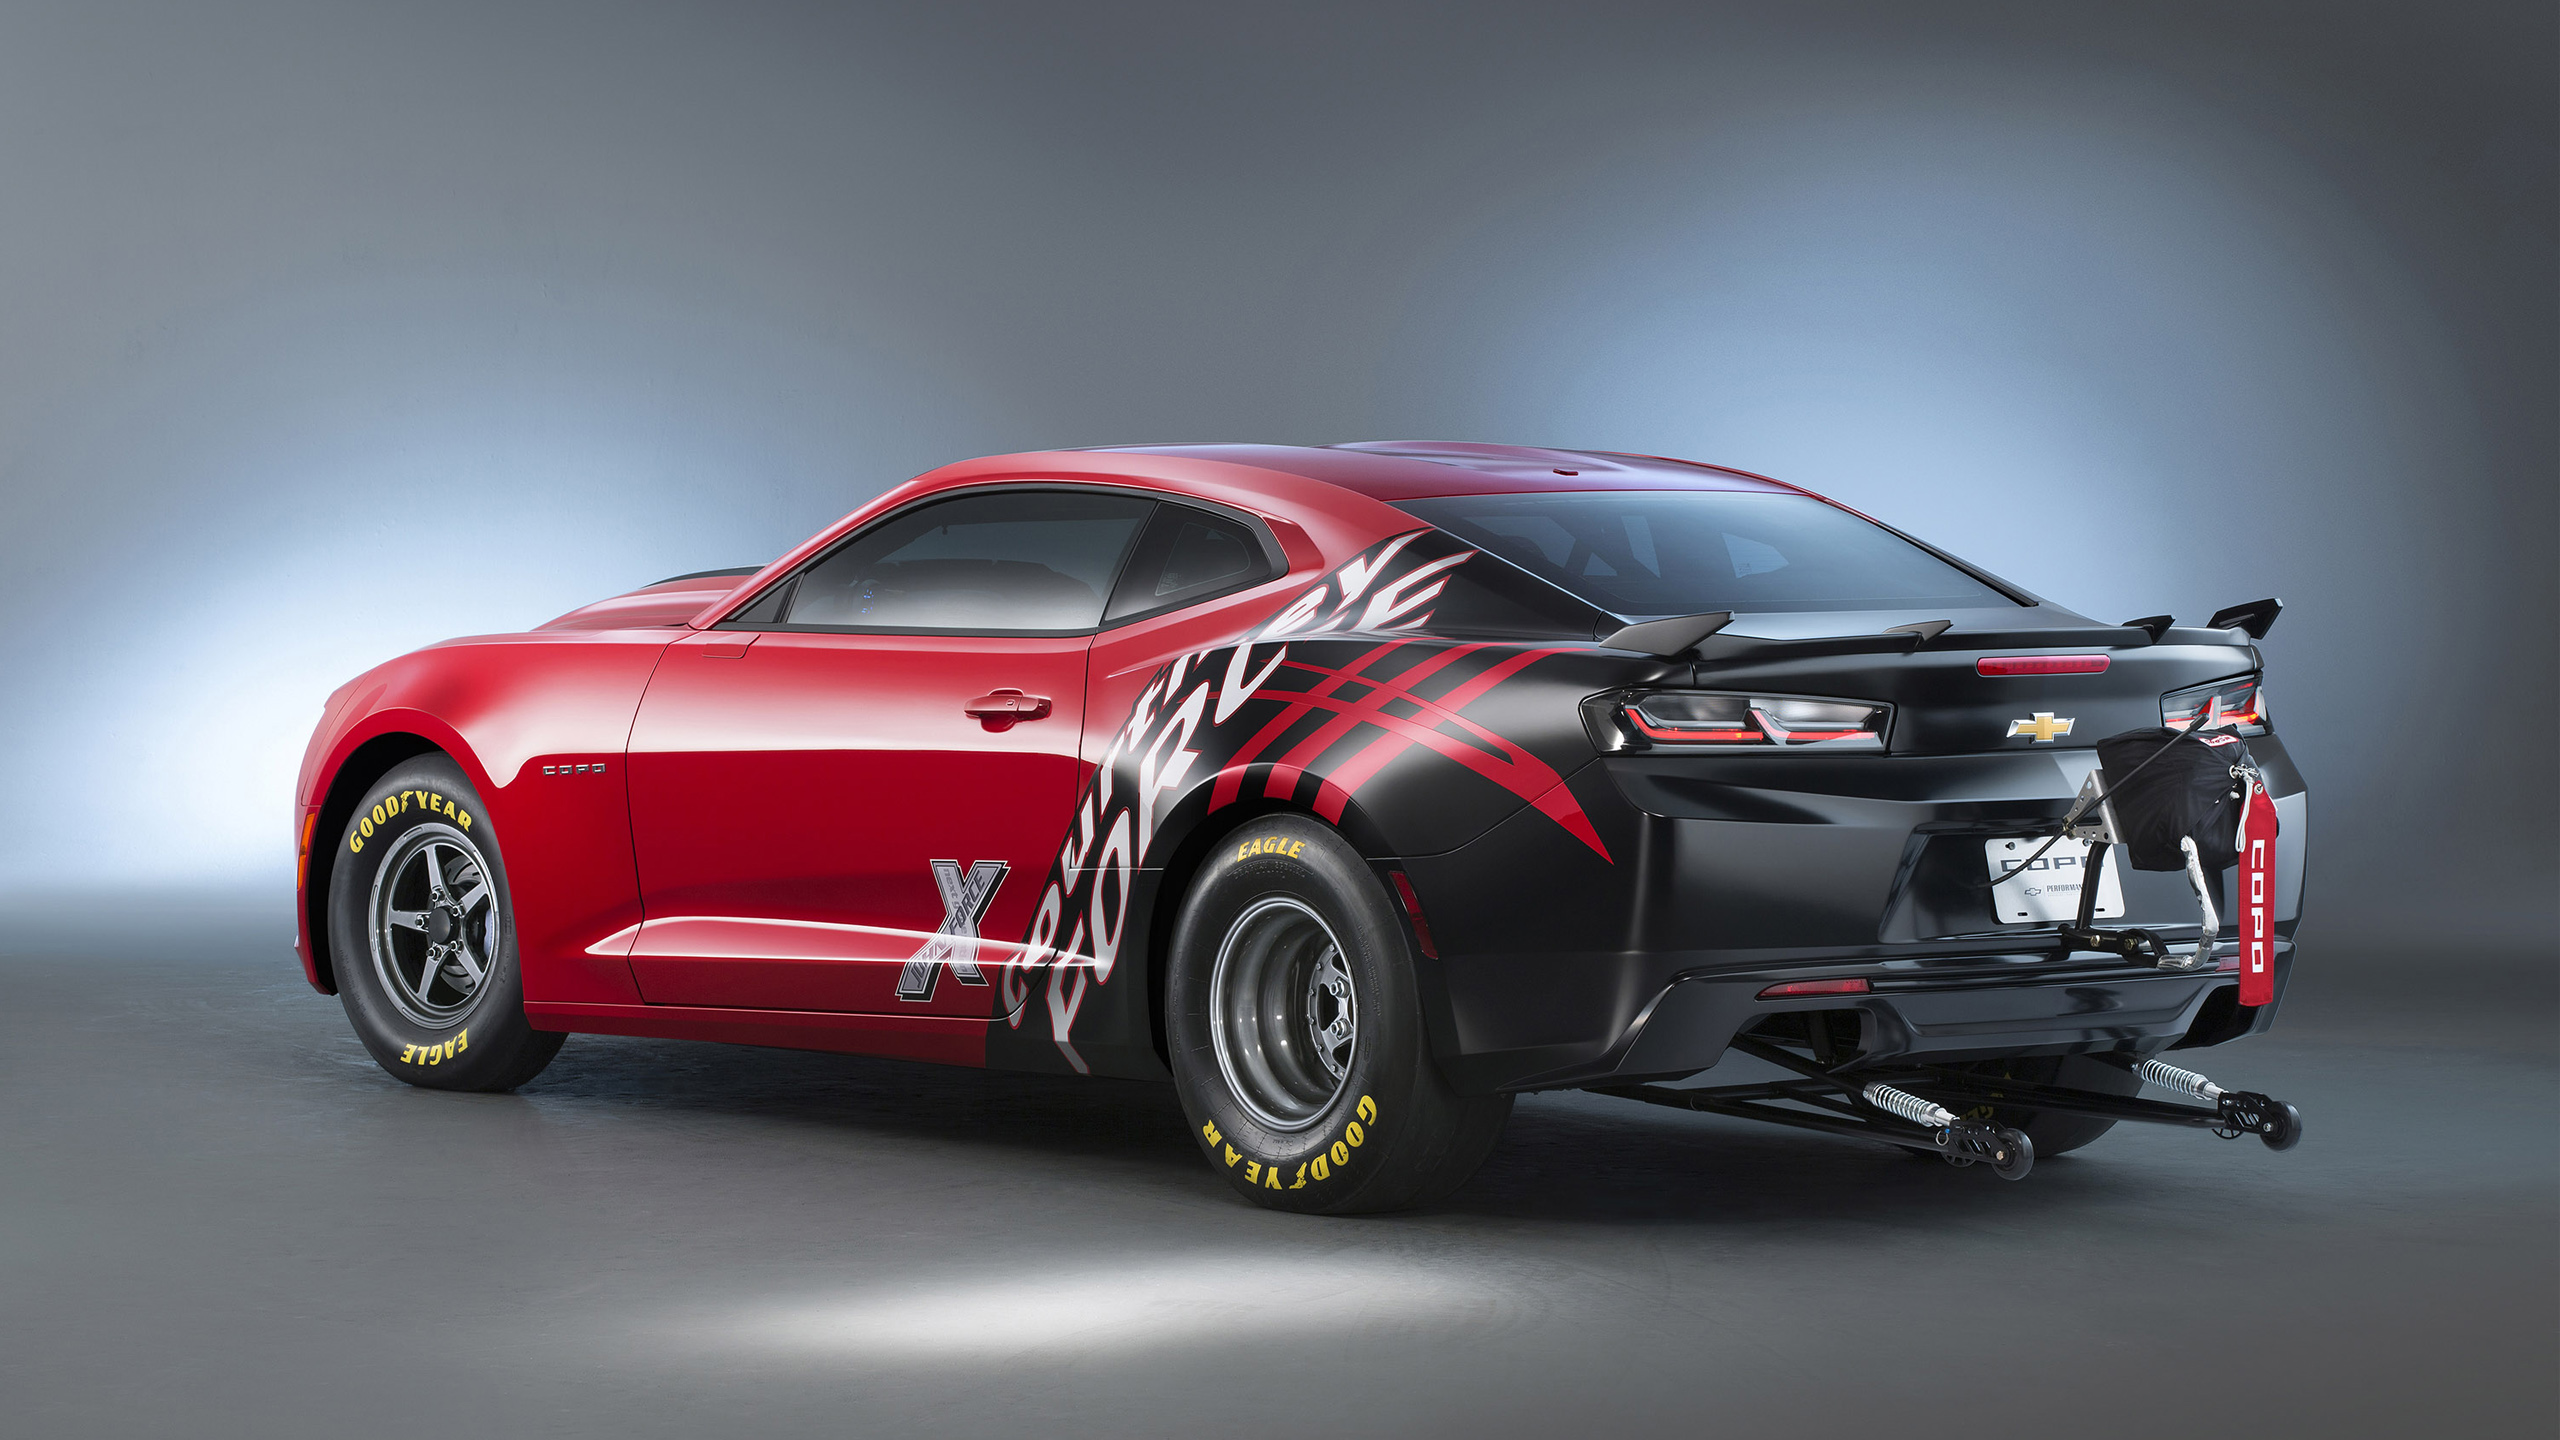 2016 Chevrolet Copo Camaro Wallpaper Hd Car Wallpapers Id 6125